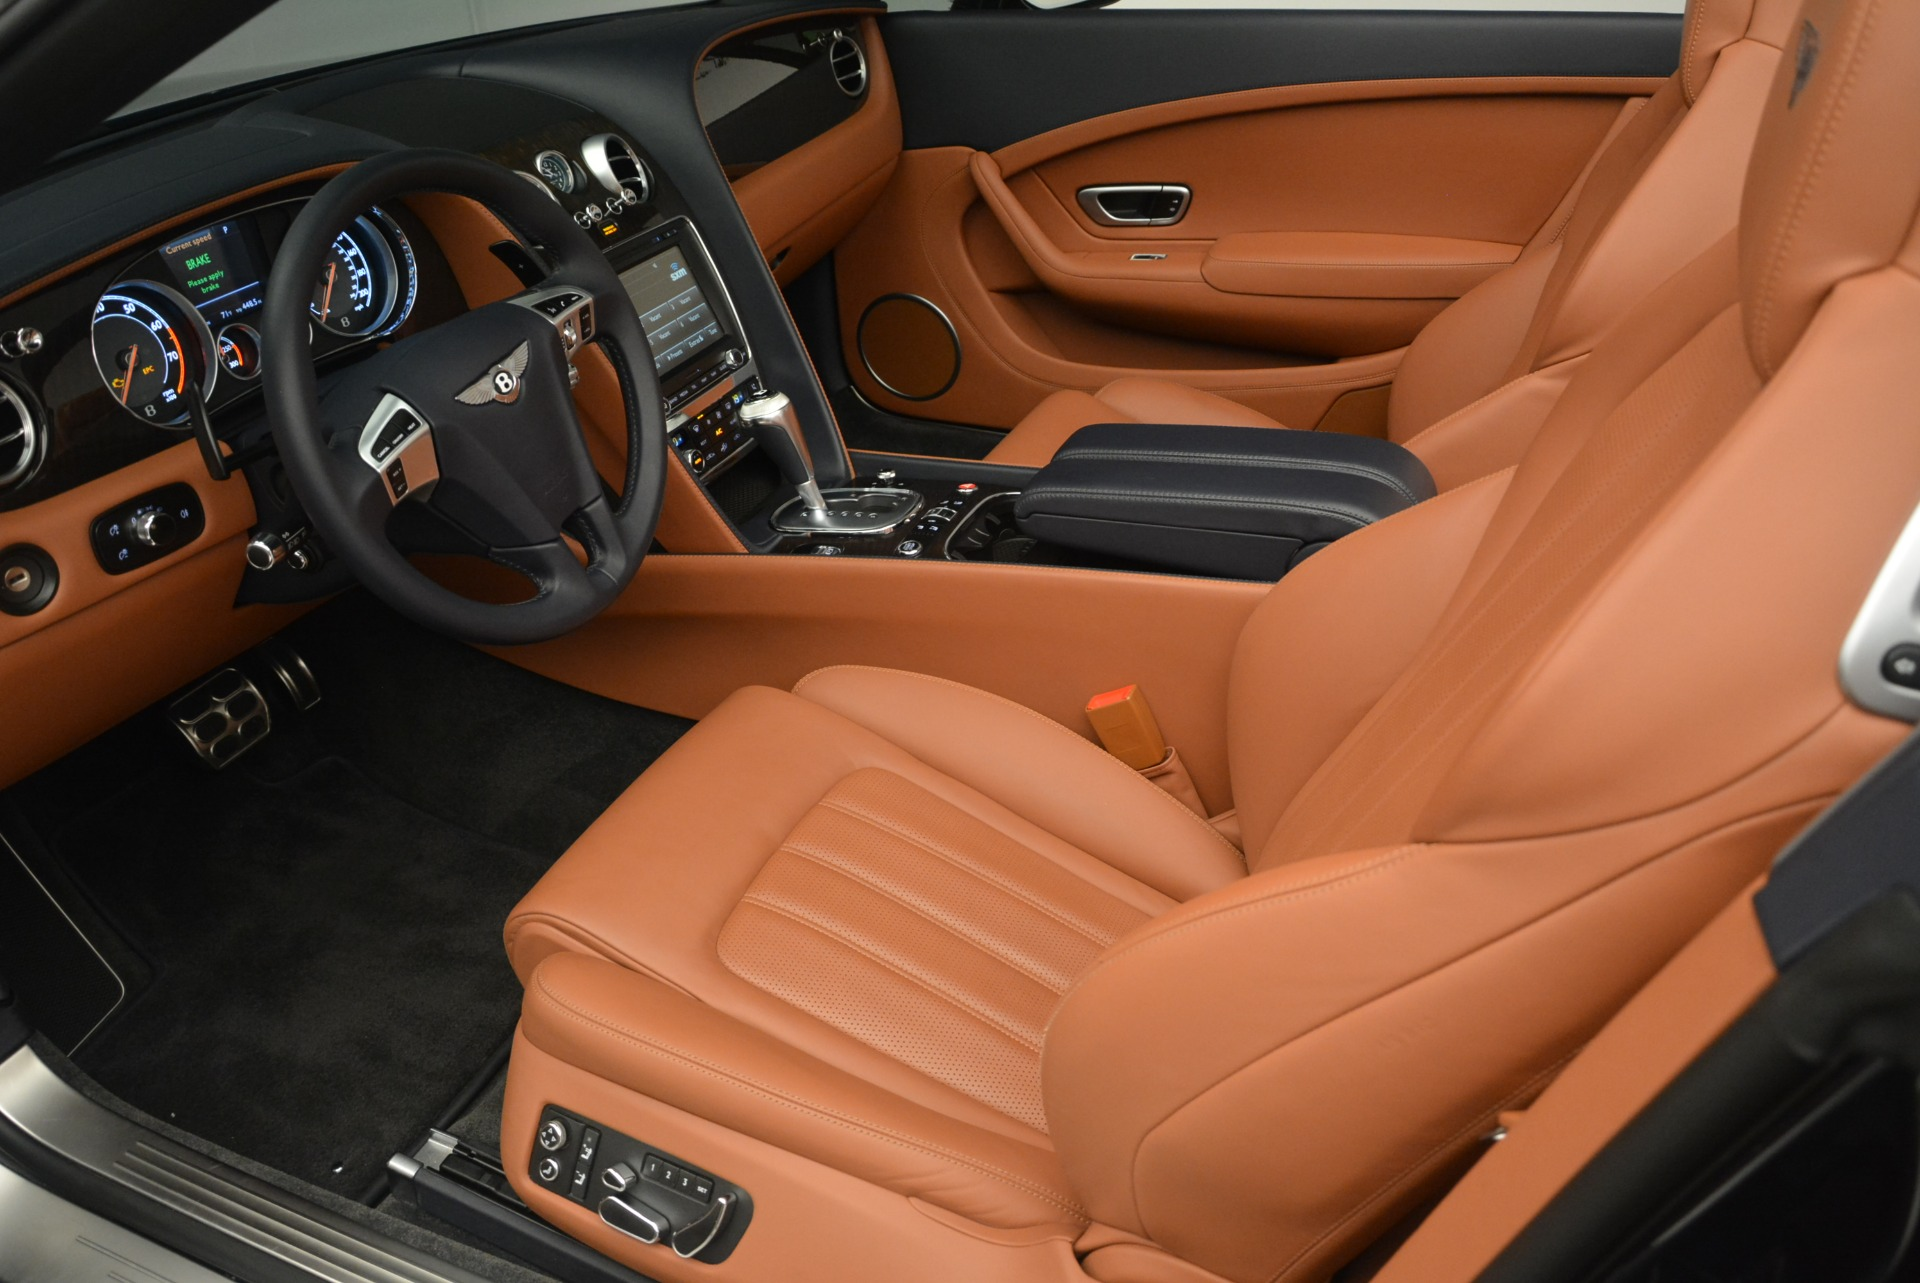 Used 2015 Bentley Continental GT V8 S For Sale In Westport, CT 2210_p21